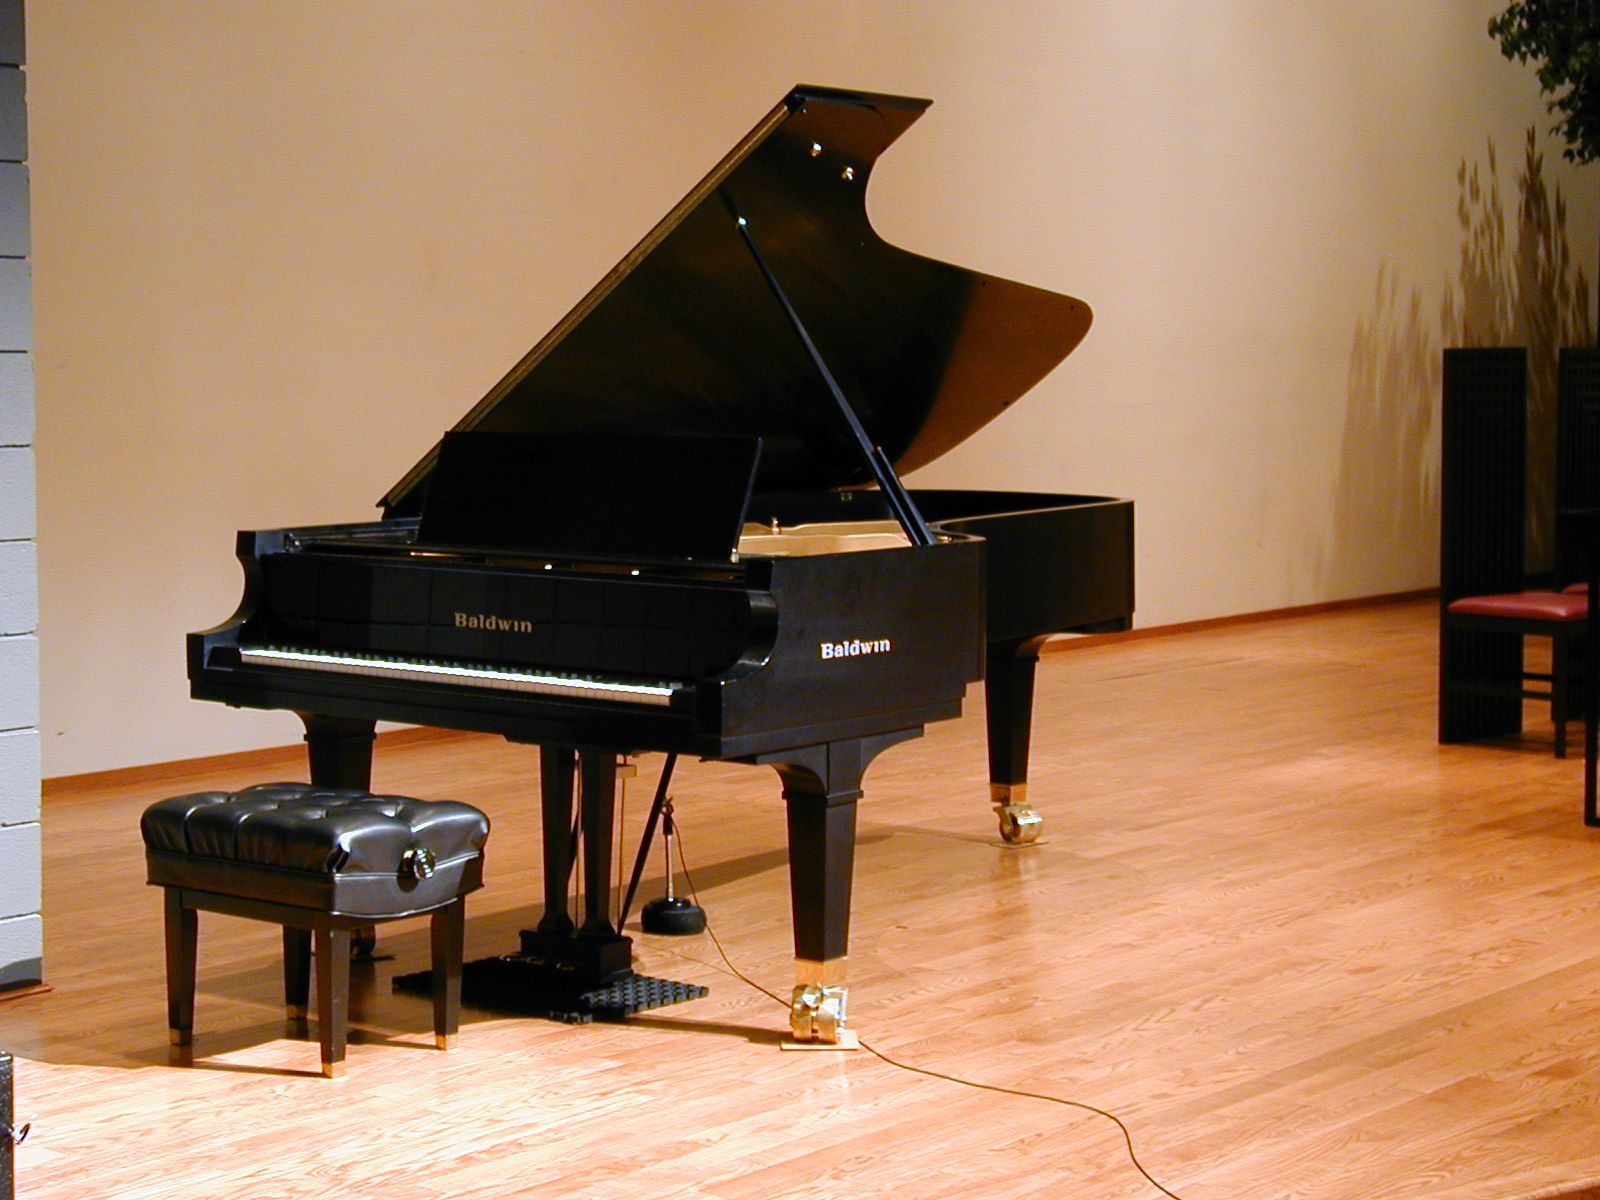 Movingcompany Localpianomover Are You Looking For A Piano Mover In Hamilton Morrison Moving Is A Locally And Operated Movin Moving A Piano Piano Best Piano